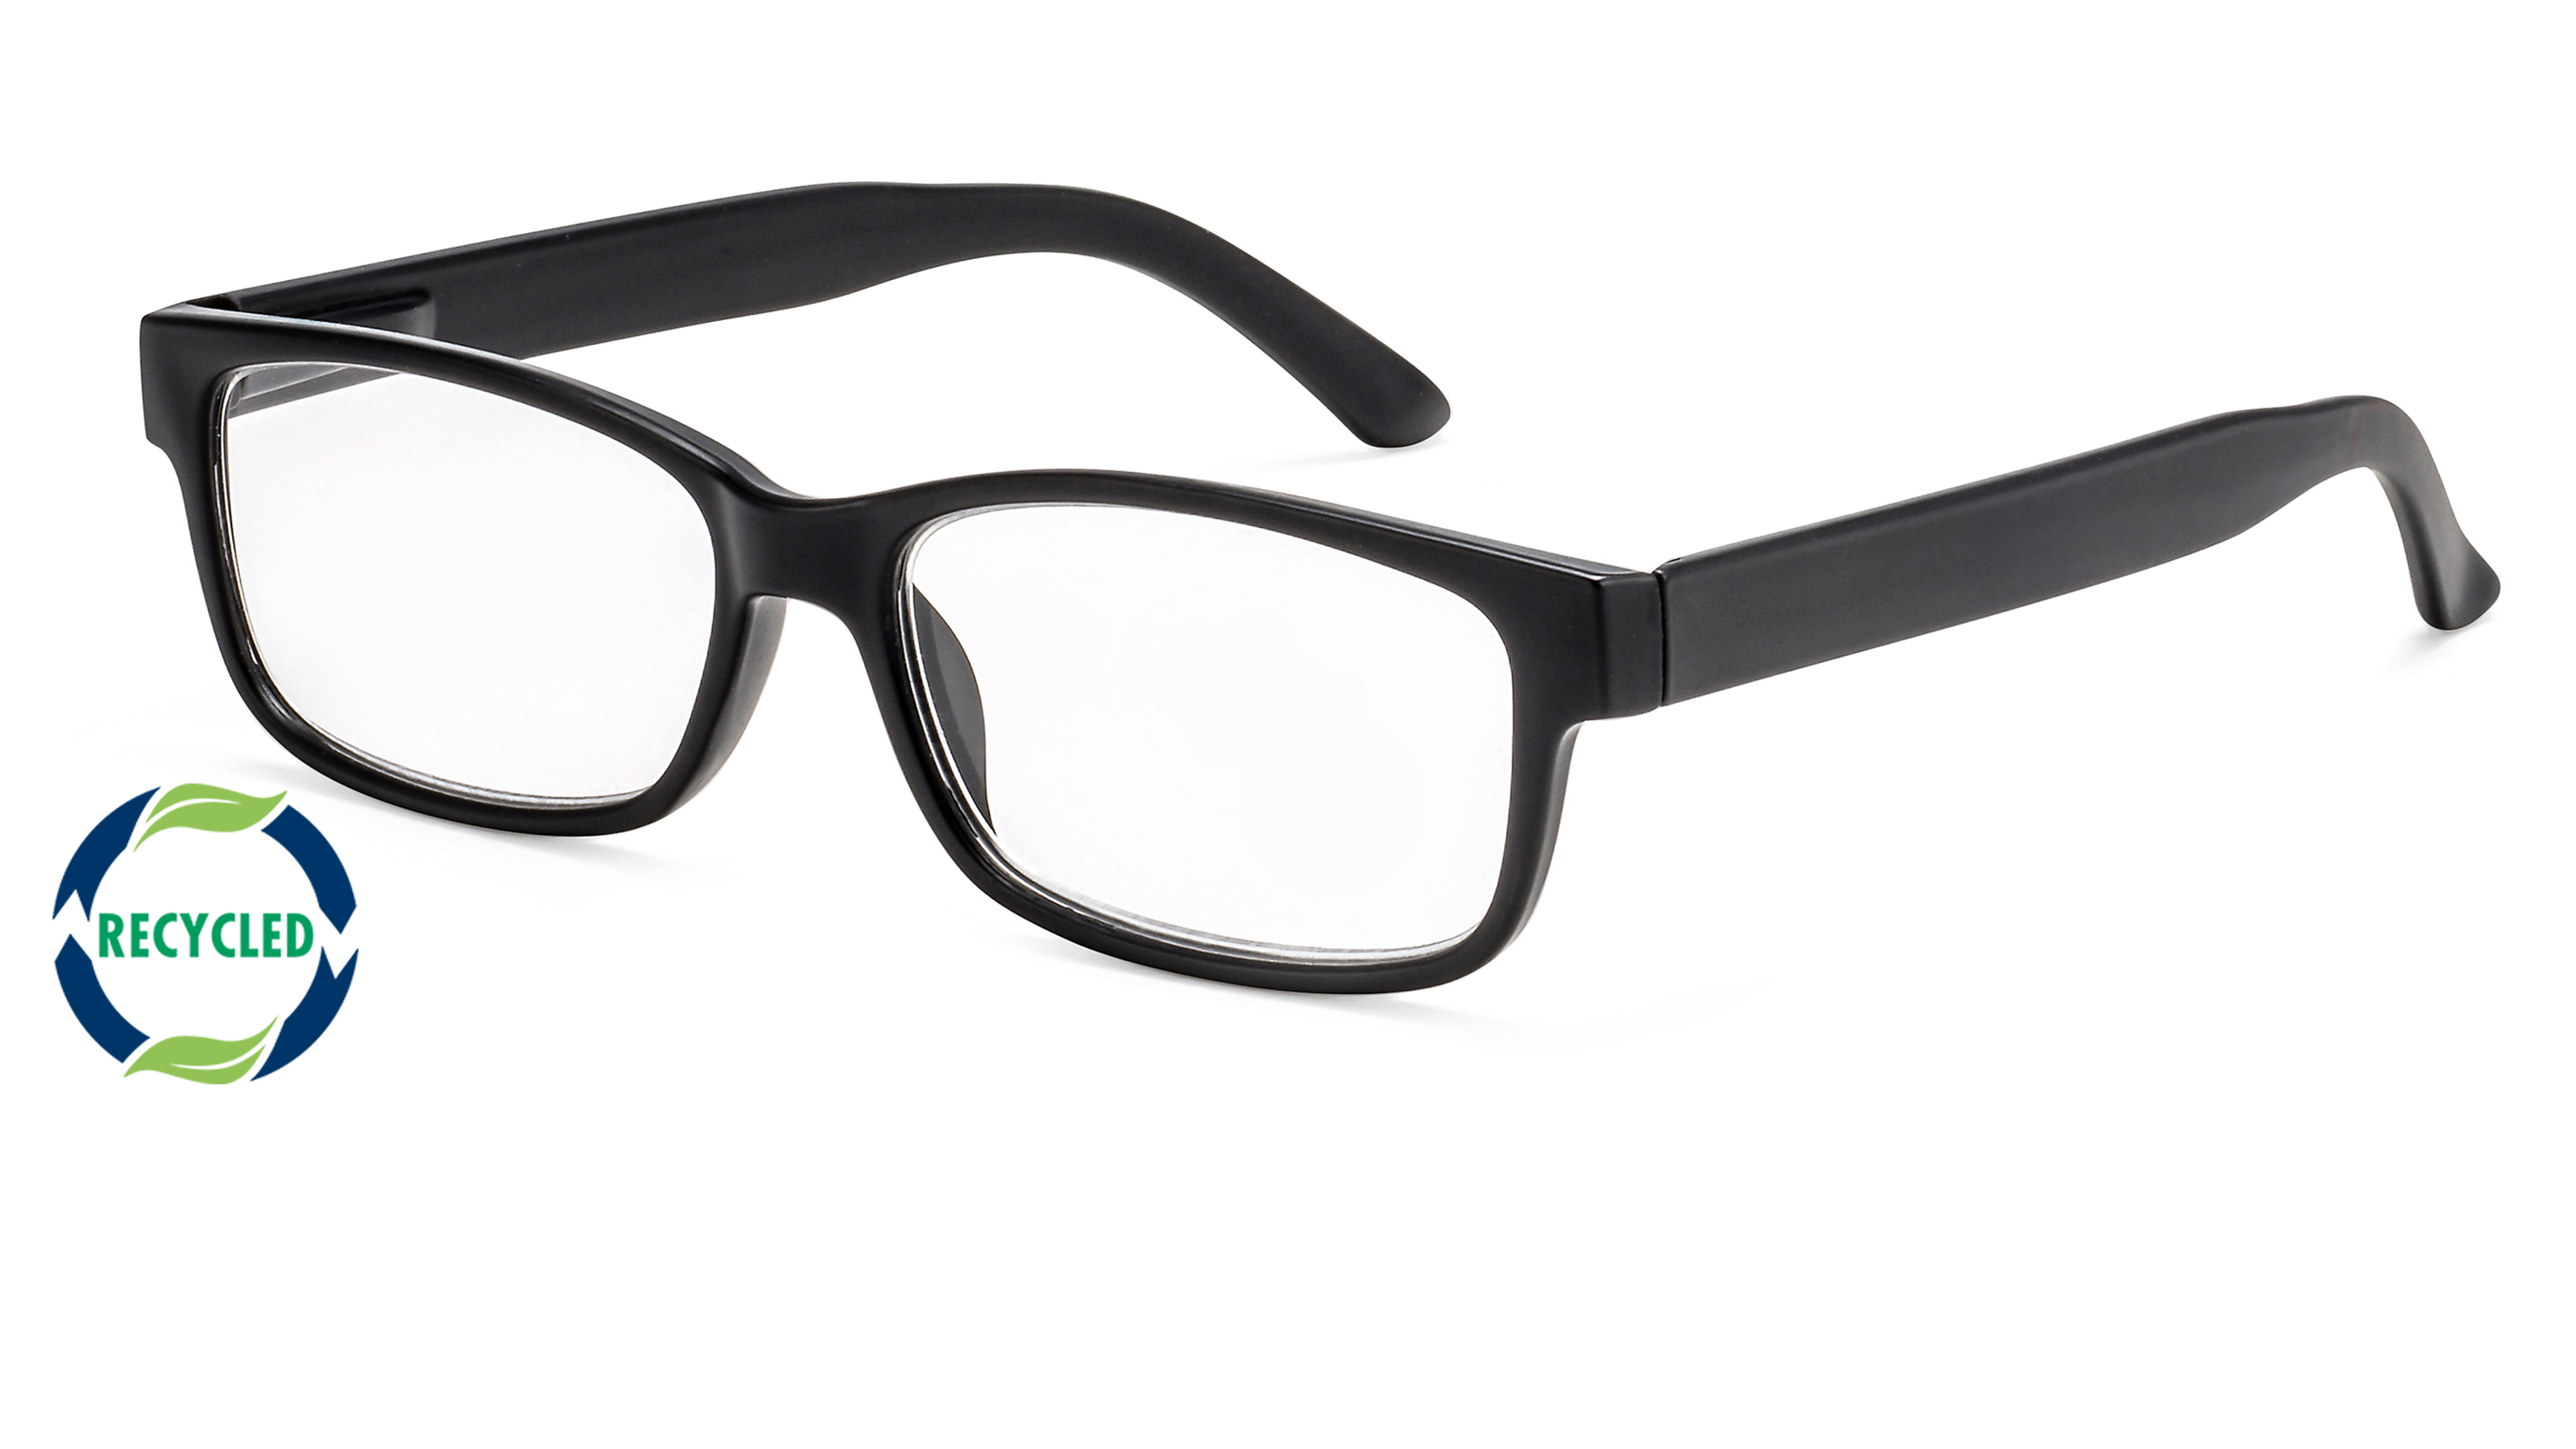 Filtral recycling reading glasses oslo black